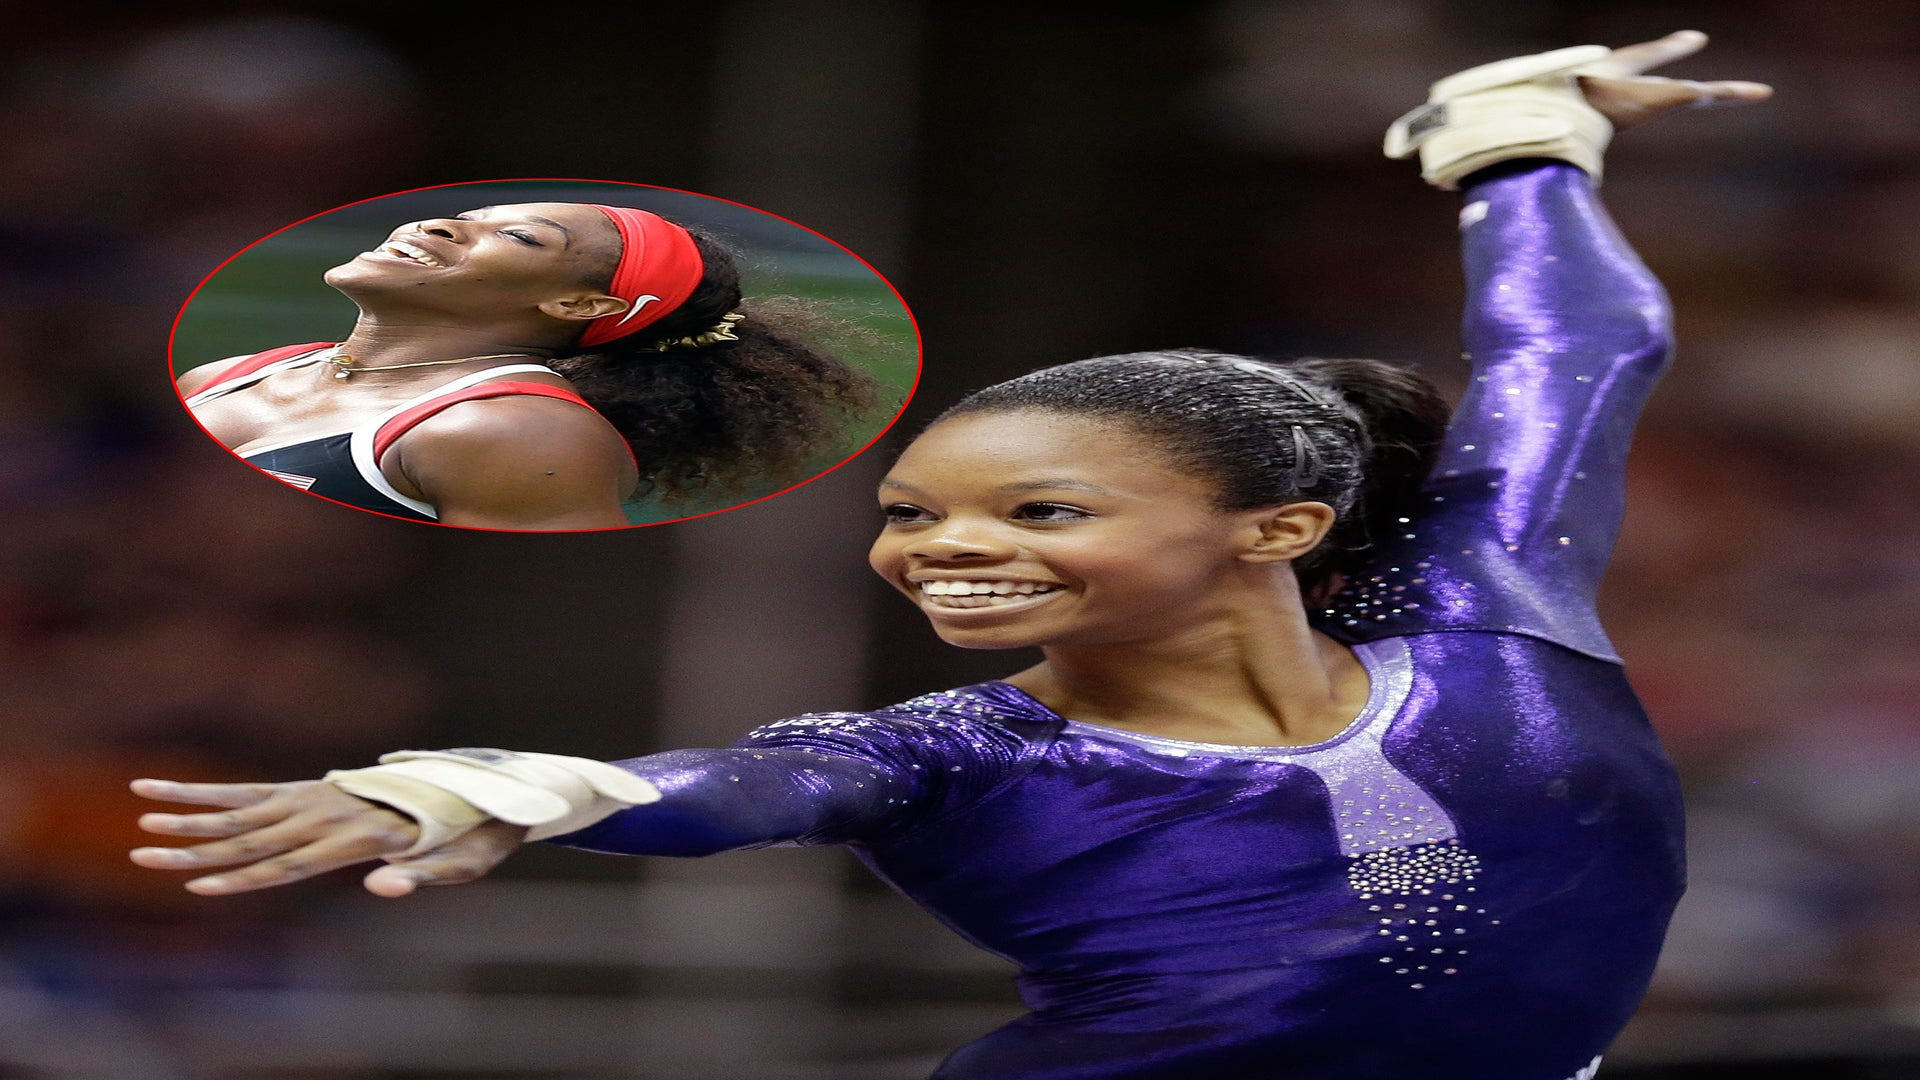 Olympics Update: Gabby Douglas Advances to All-Around, Serena Williams Wins 1st Round Match